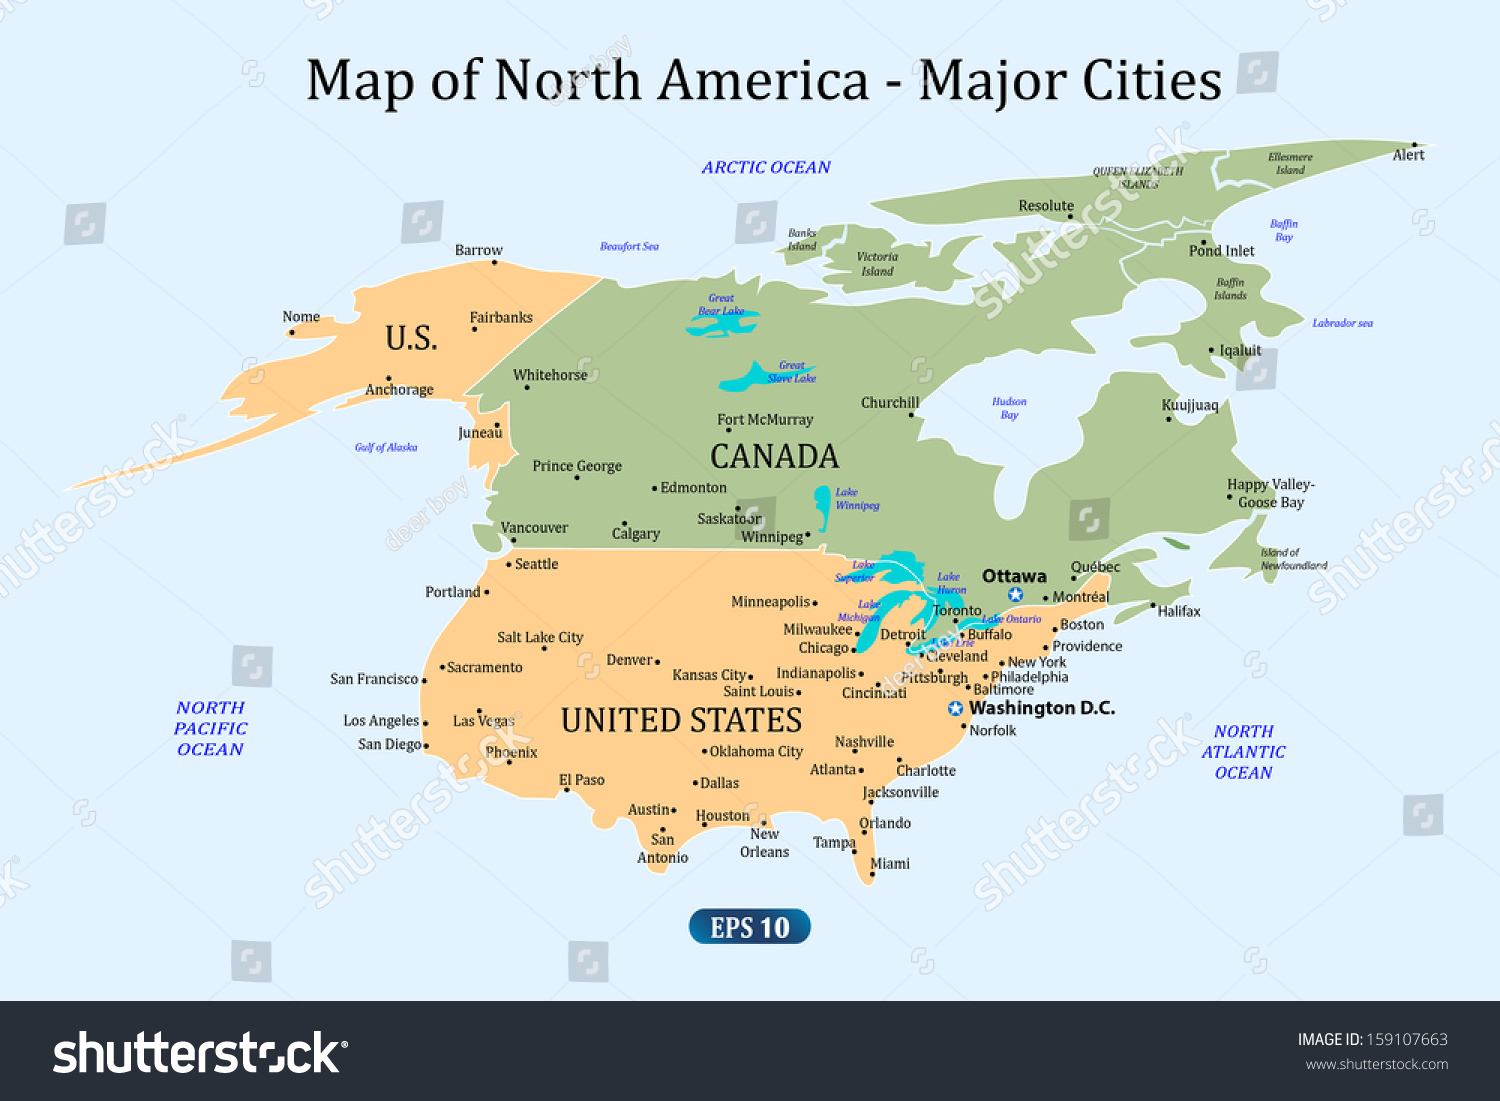 100 United States Historical City Maps Map Of Usa